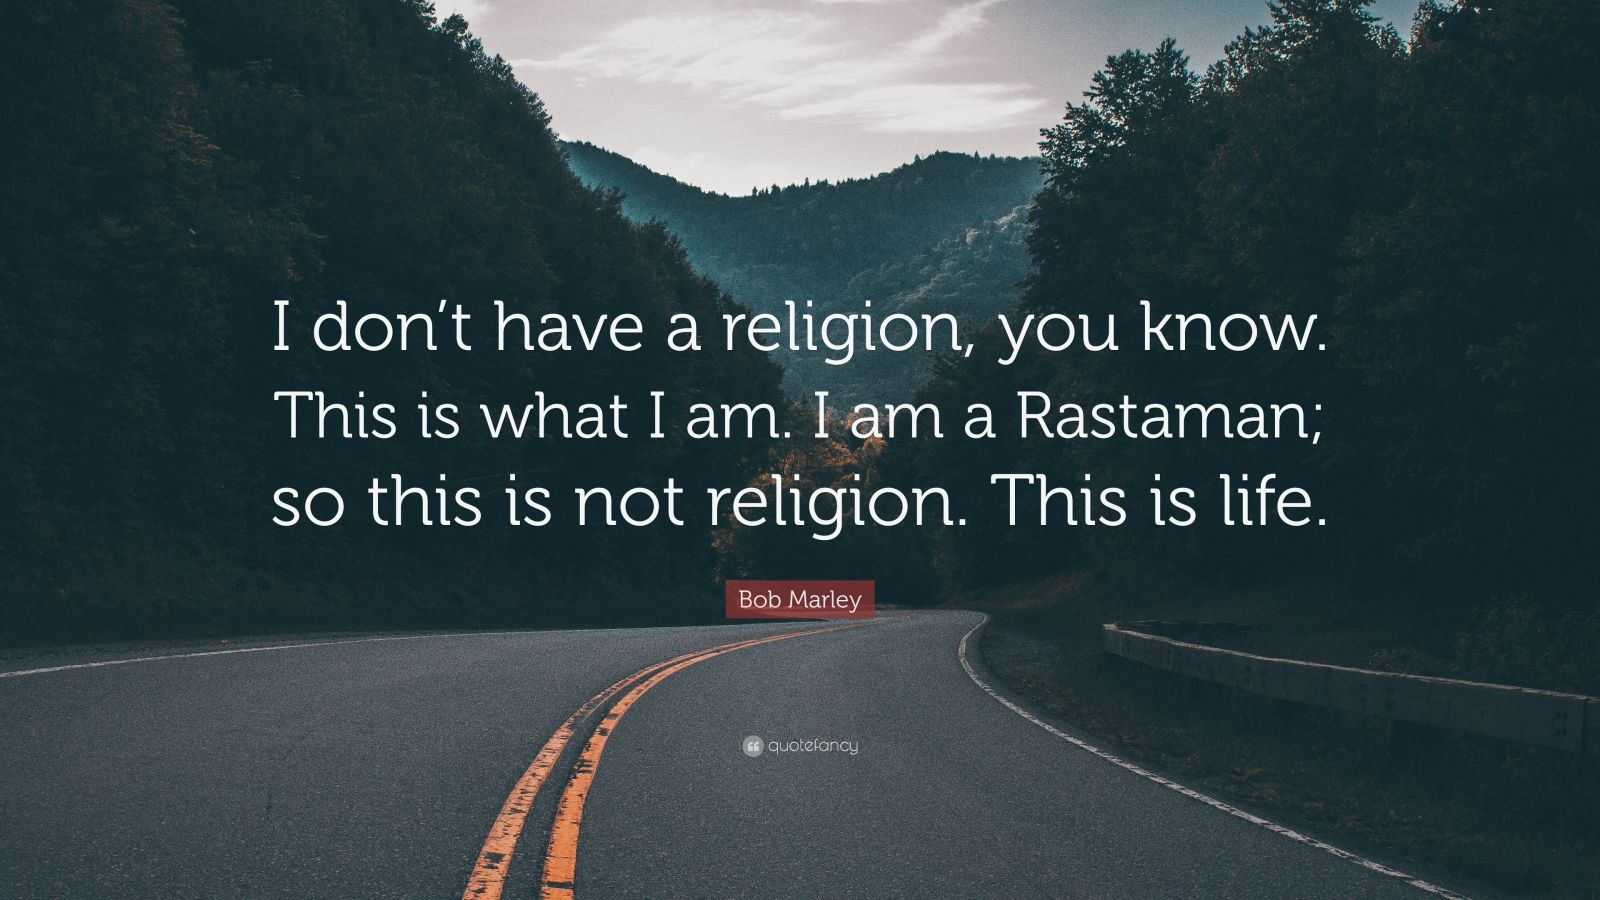 """Bob Marley Quote: """"I don't have a religion, you know. This is what I am. I am a Rastaman; so this is not religion. This is life."""""""